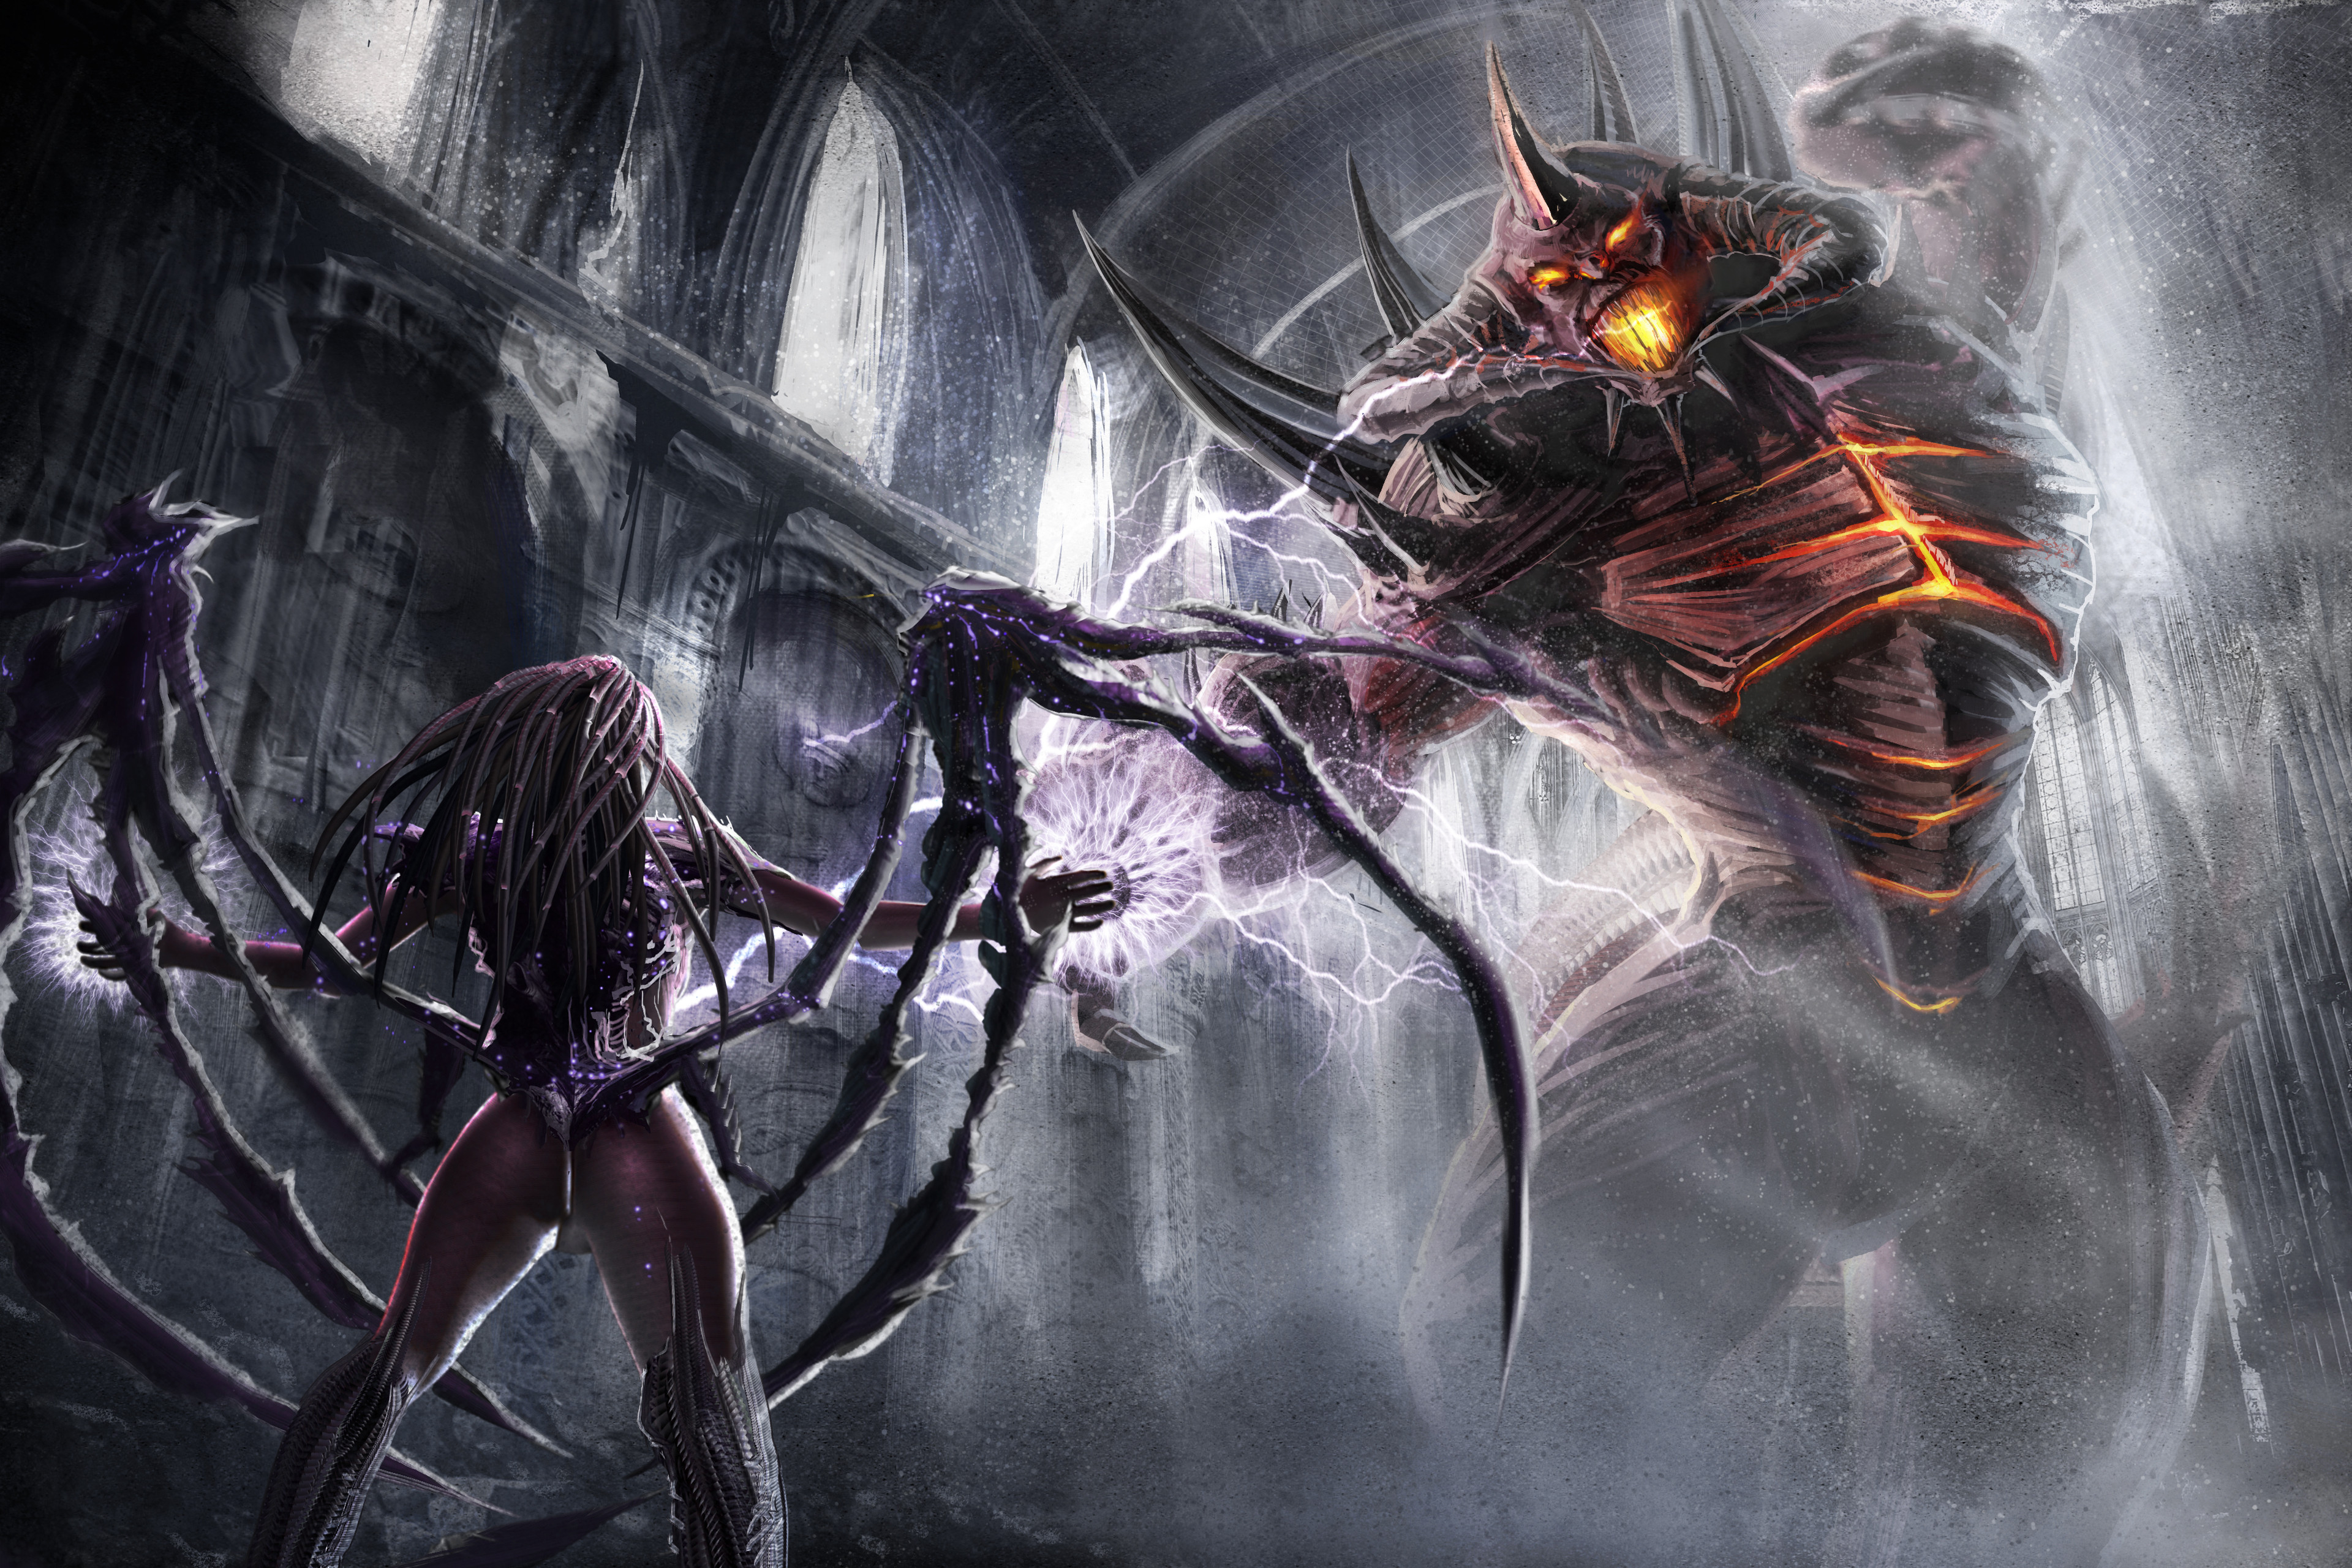 Queen of blades VS Lord of terror.